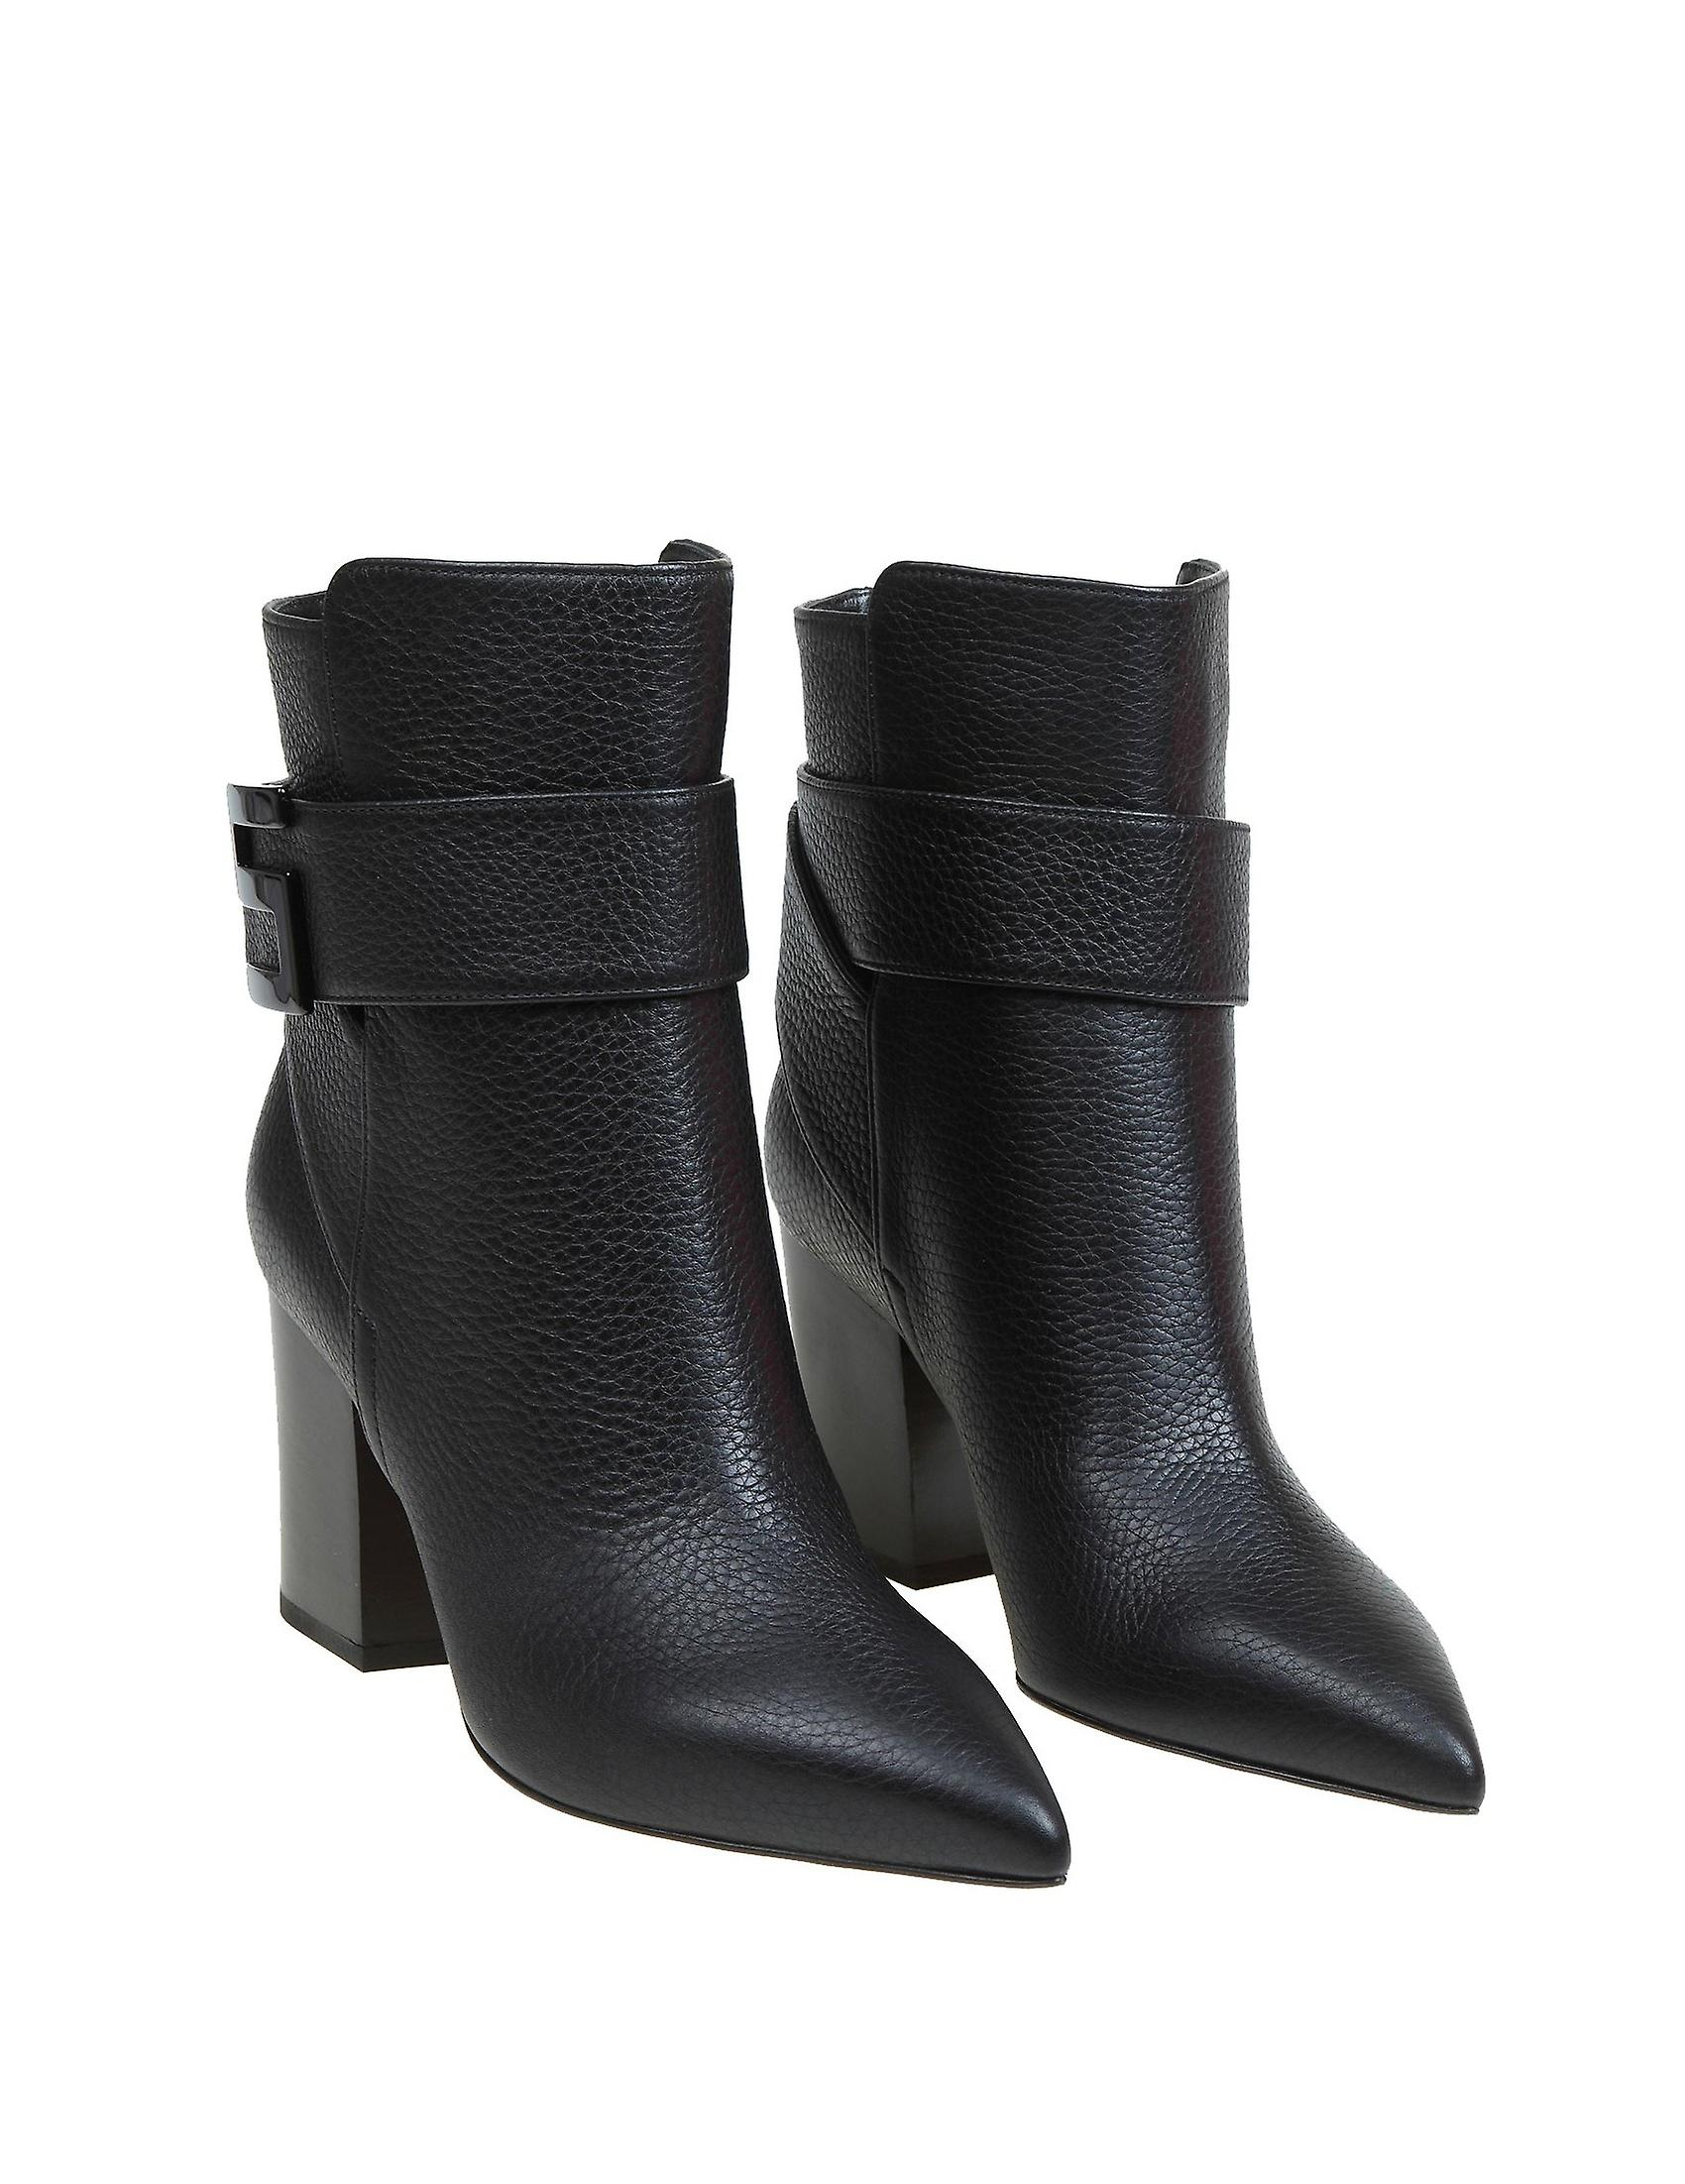 Sergio Rossi A89080mmvr131000 Women's Black Leather Ankle Boots